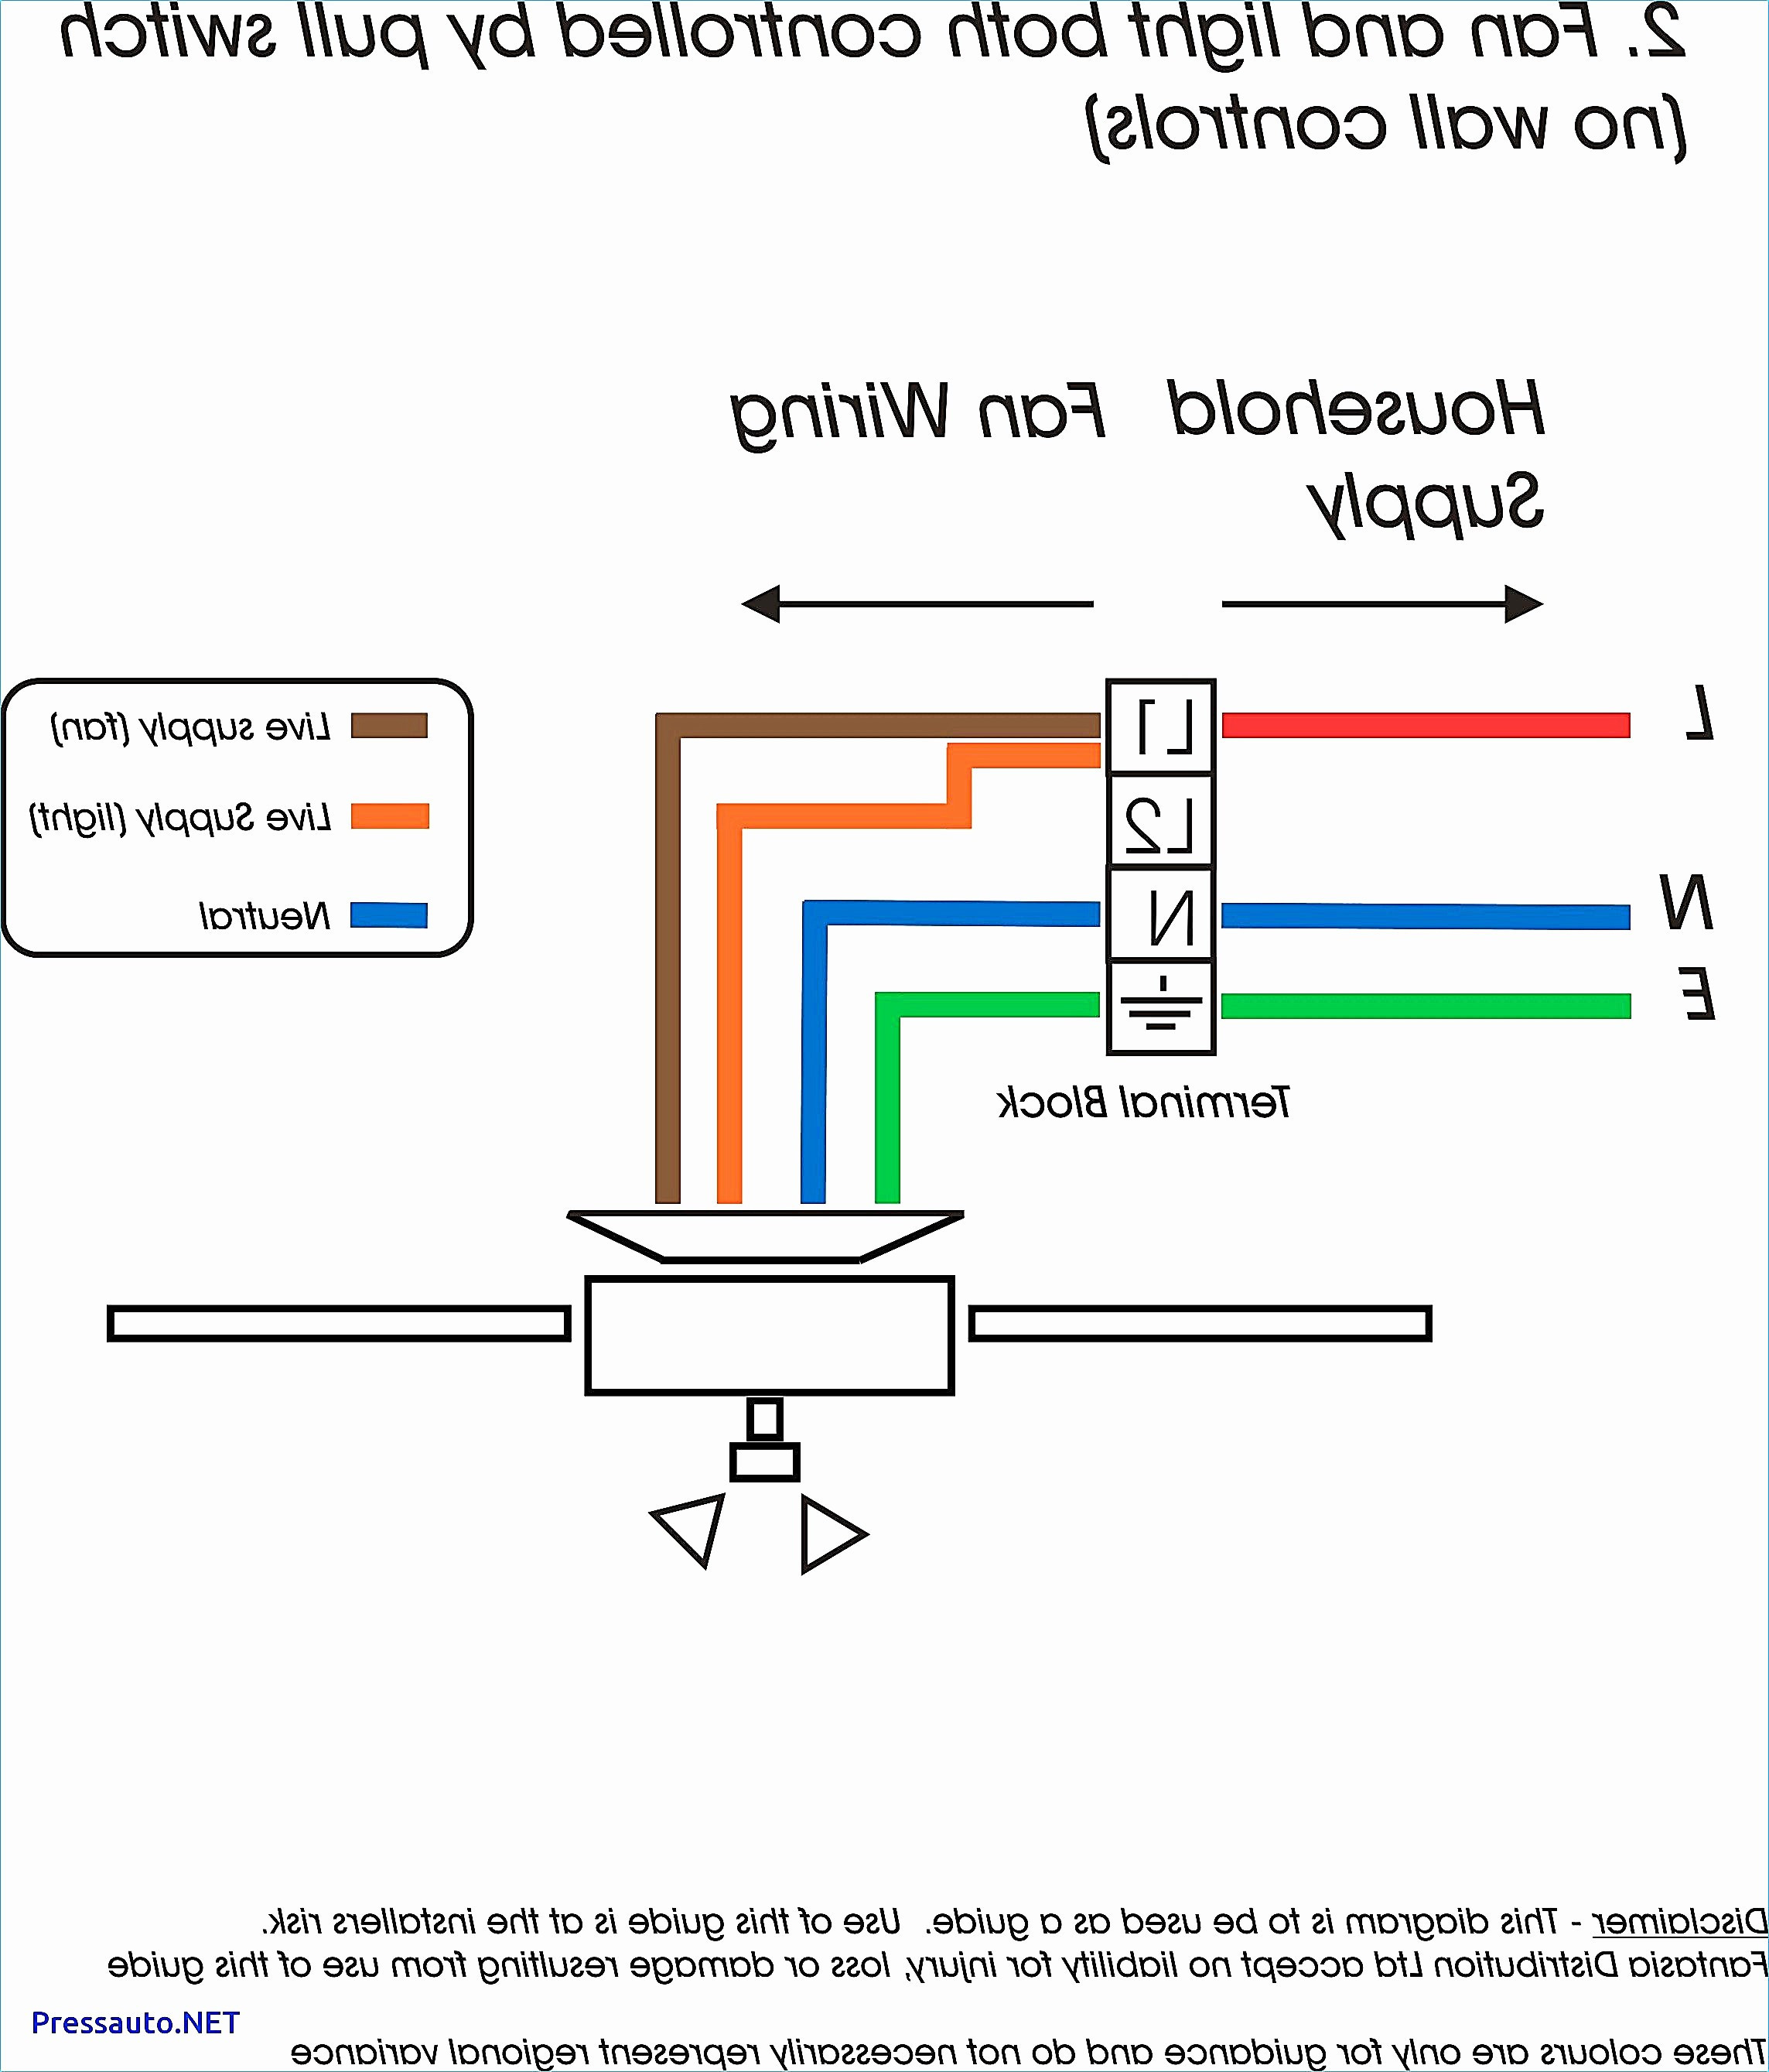 fire alarm wiring diagram Download-Domestic Alarm Wiring Diagram Refrence Wiring Diagram For Domestic Fire Alarm Valid Unique Hyundai Wiring 6-m